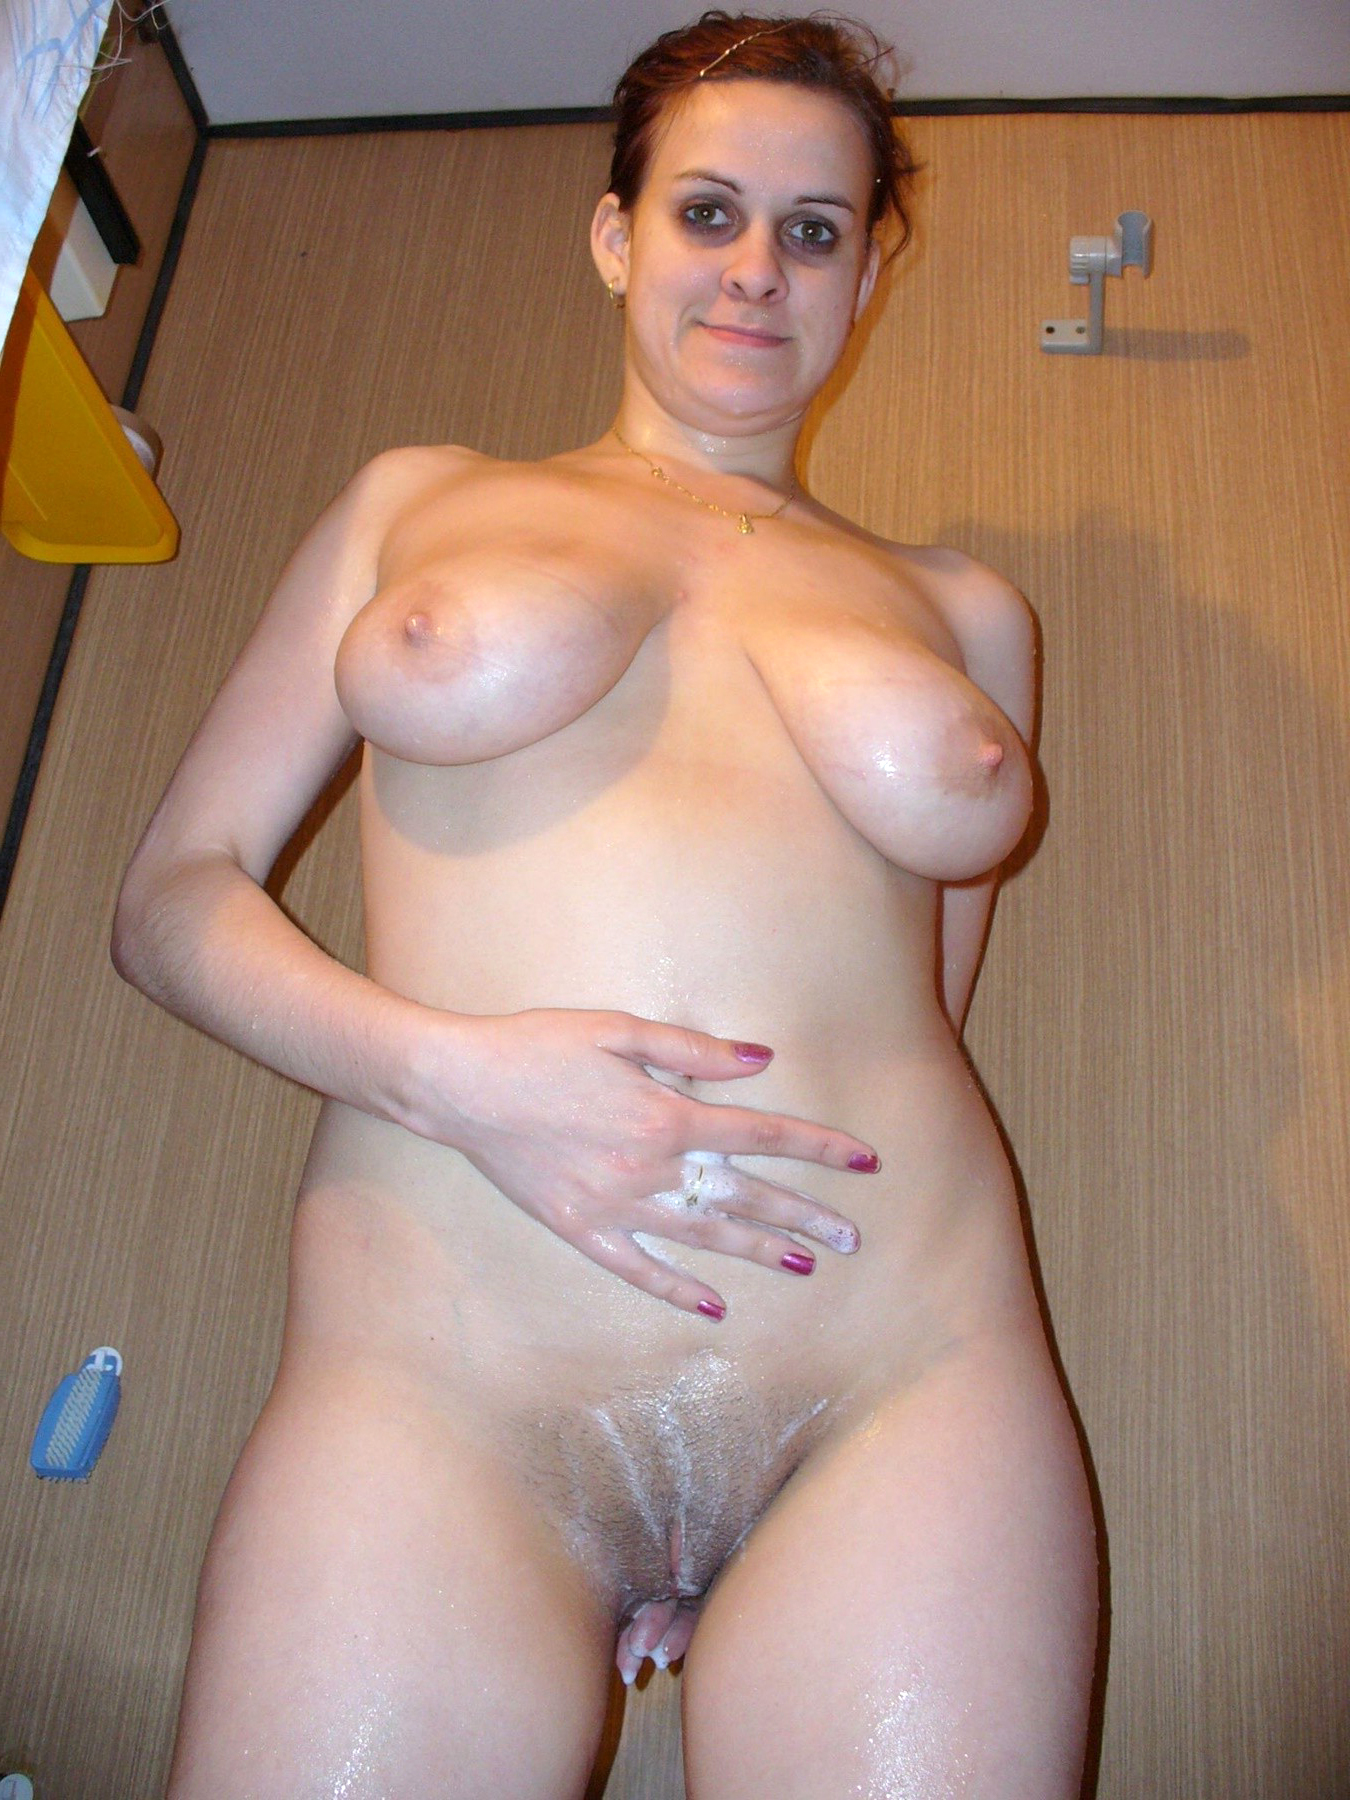 Amateur galleries naked Homemade Porn